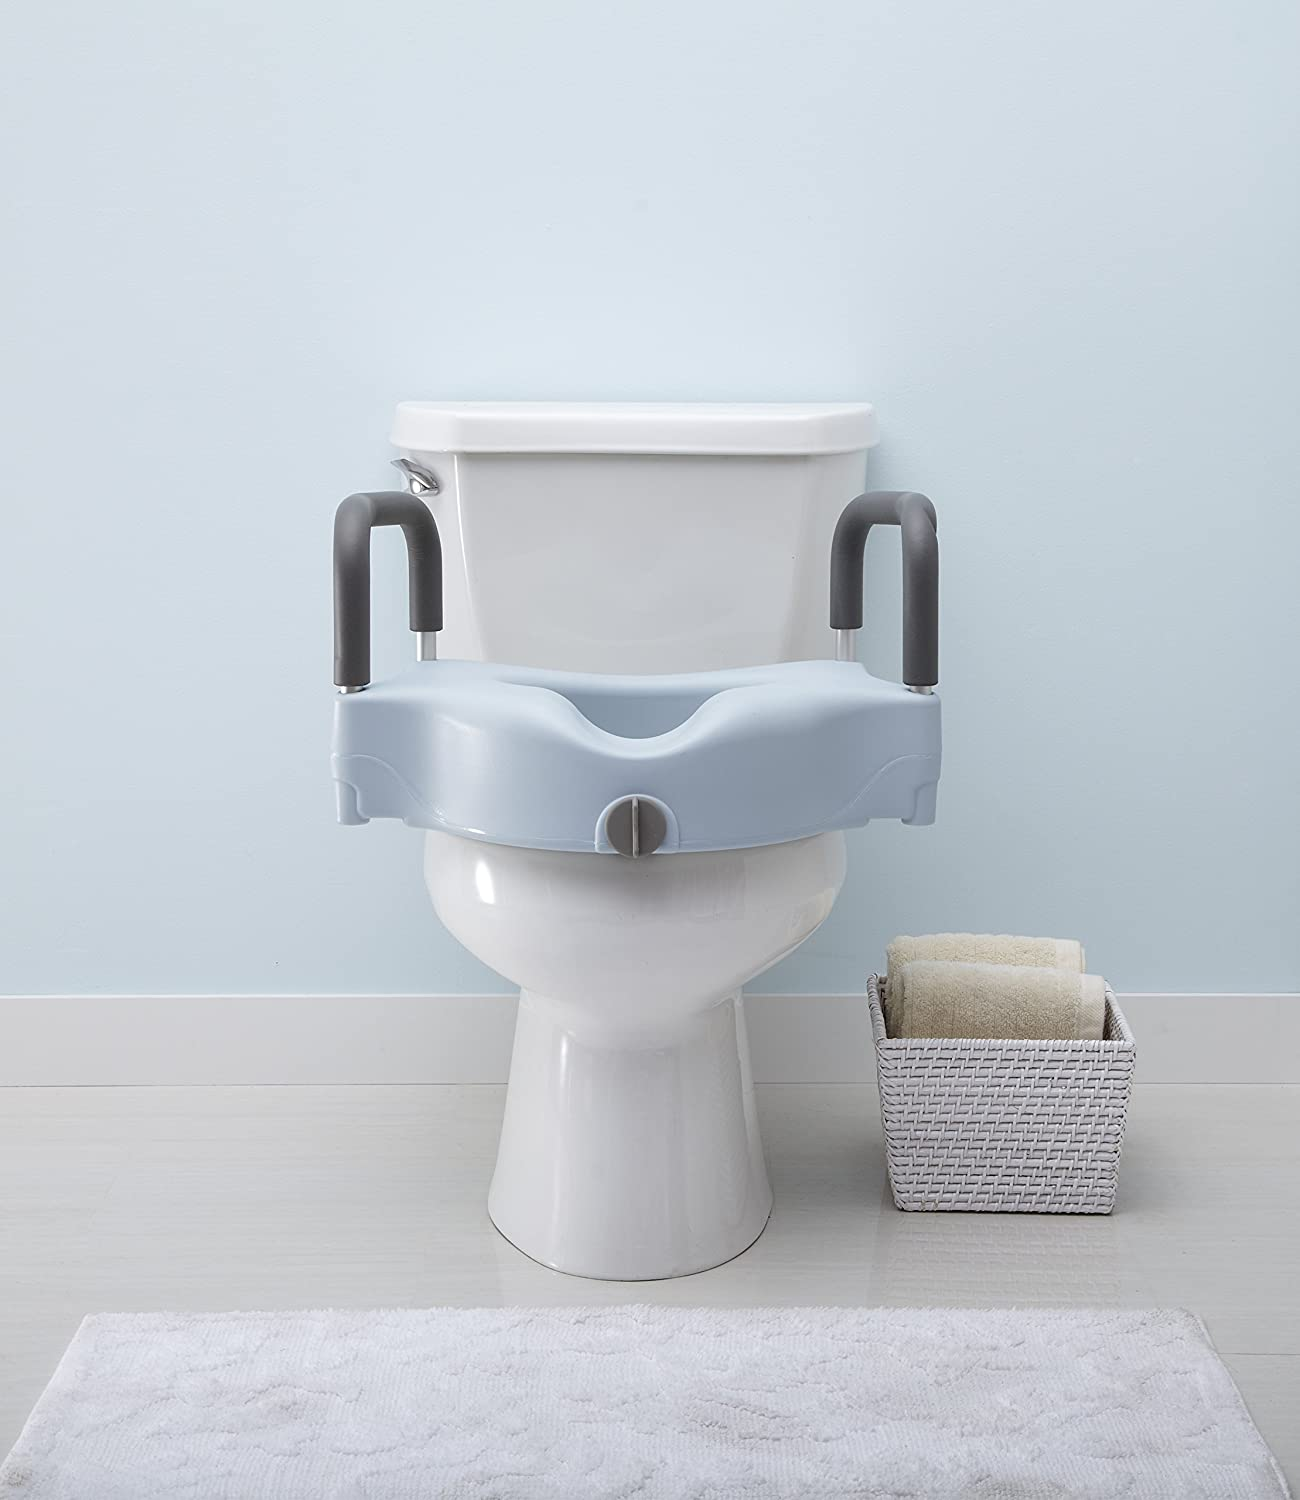 Amazon.com: Medline Locking Elevated Toilet Seat with Arms, Microban ...